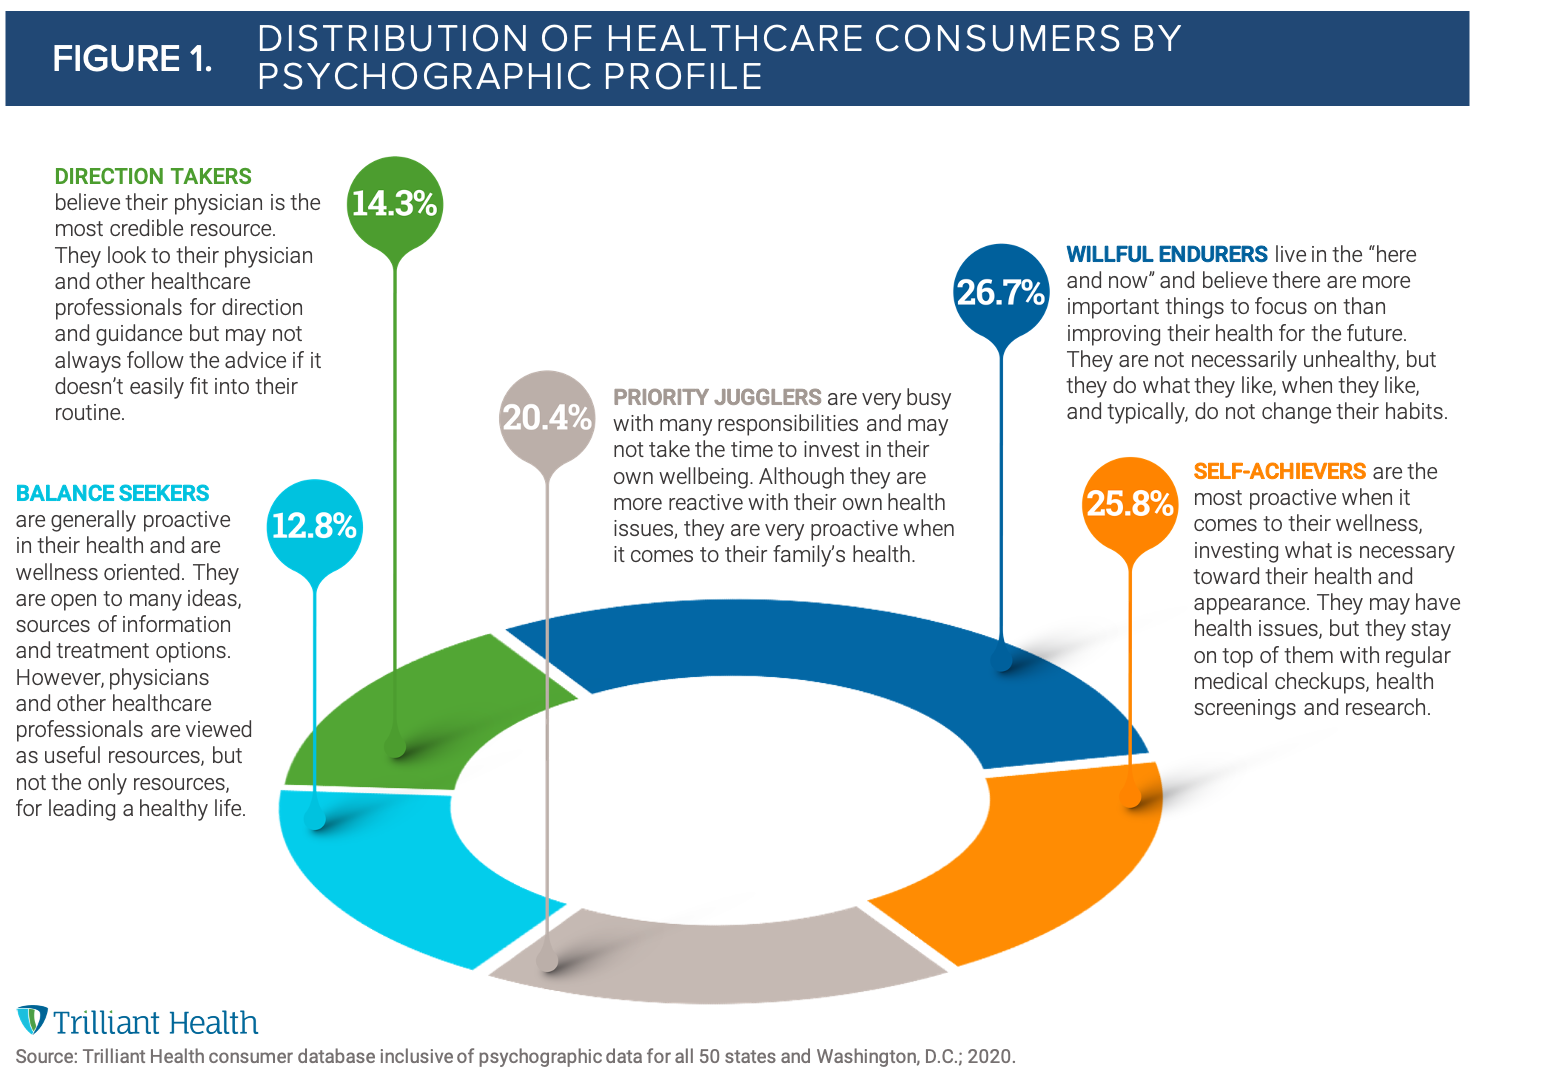 Distribution of Healthcare Consumers by Psychographic Profile-2